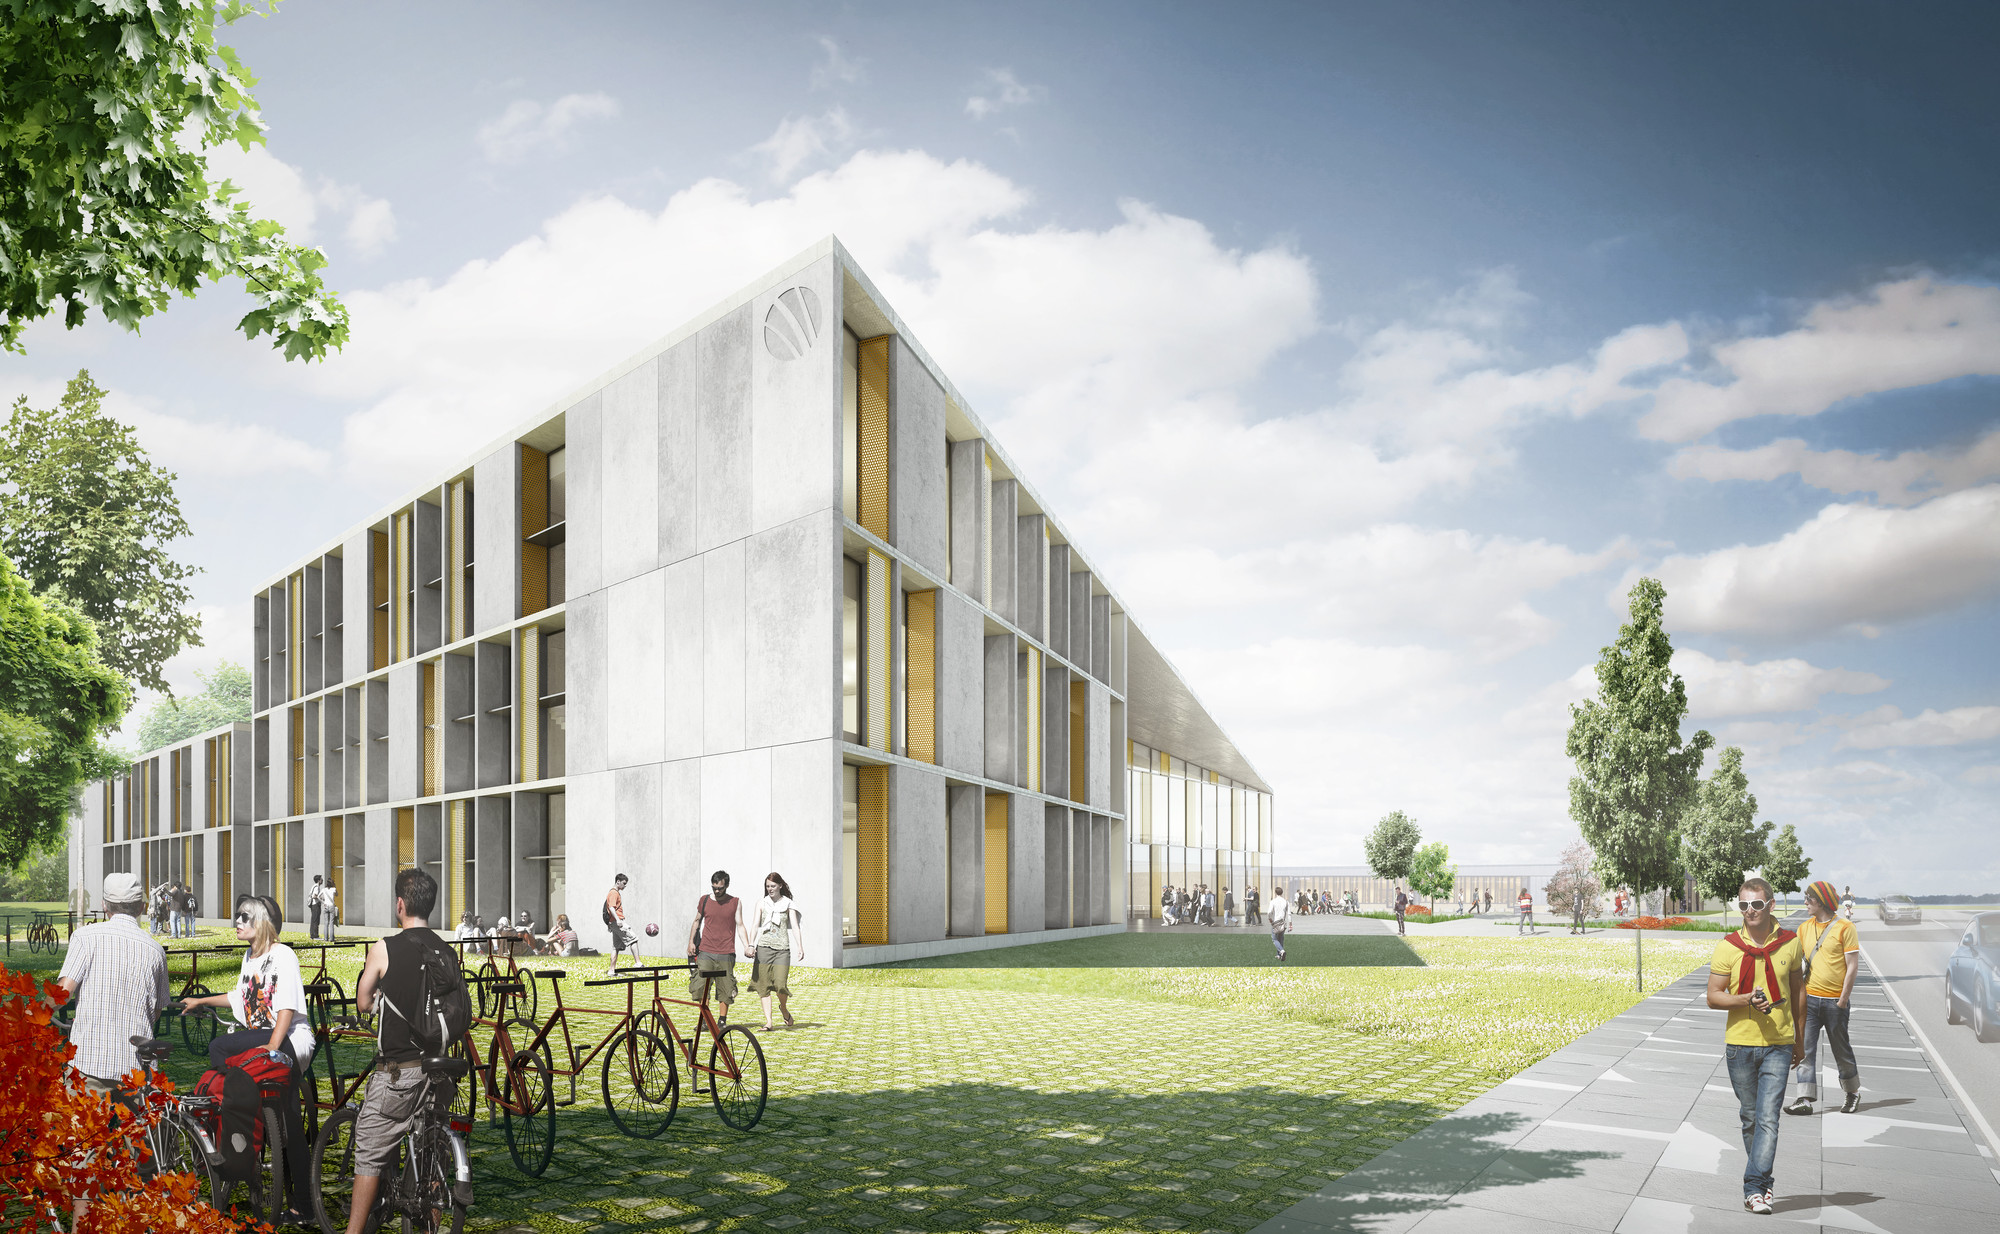 c f møller selected to design vocational school in c f møller selected to design vocational school in courtesy of c f møller architects